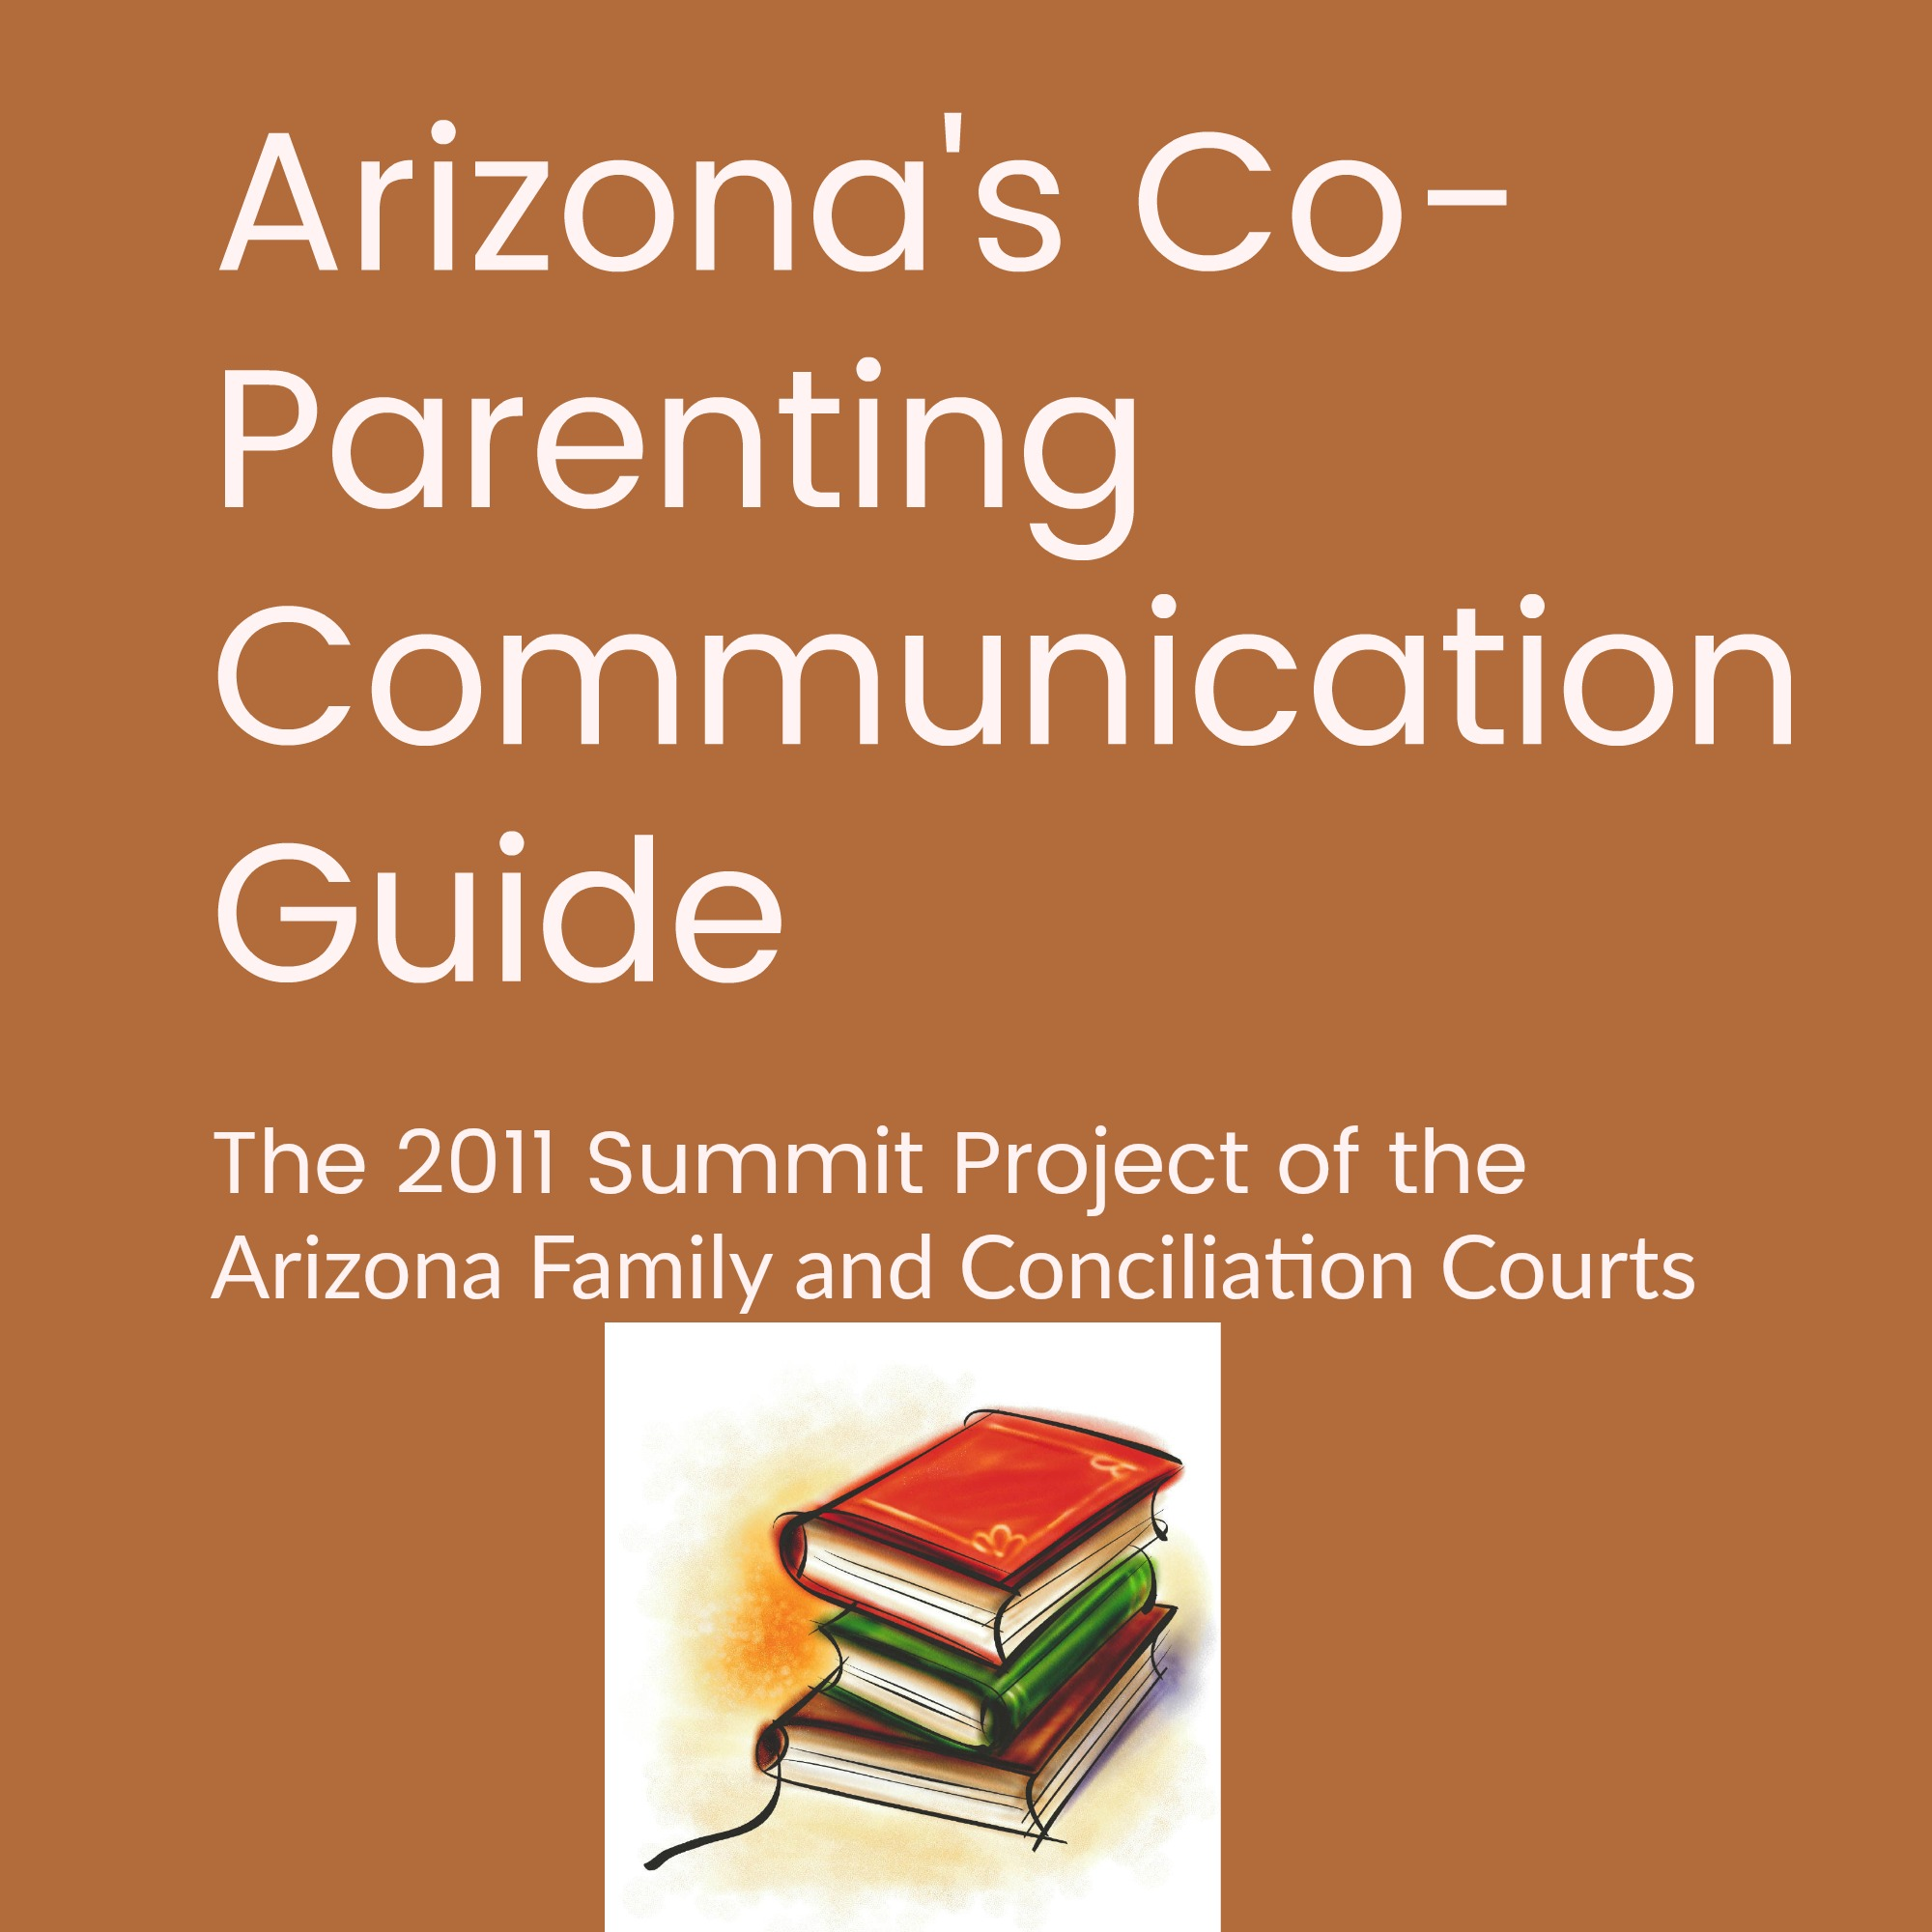 Arizona's Co-Parenting communication Guide